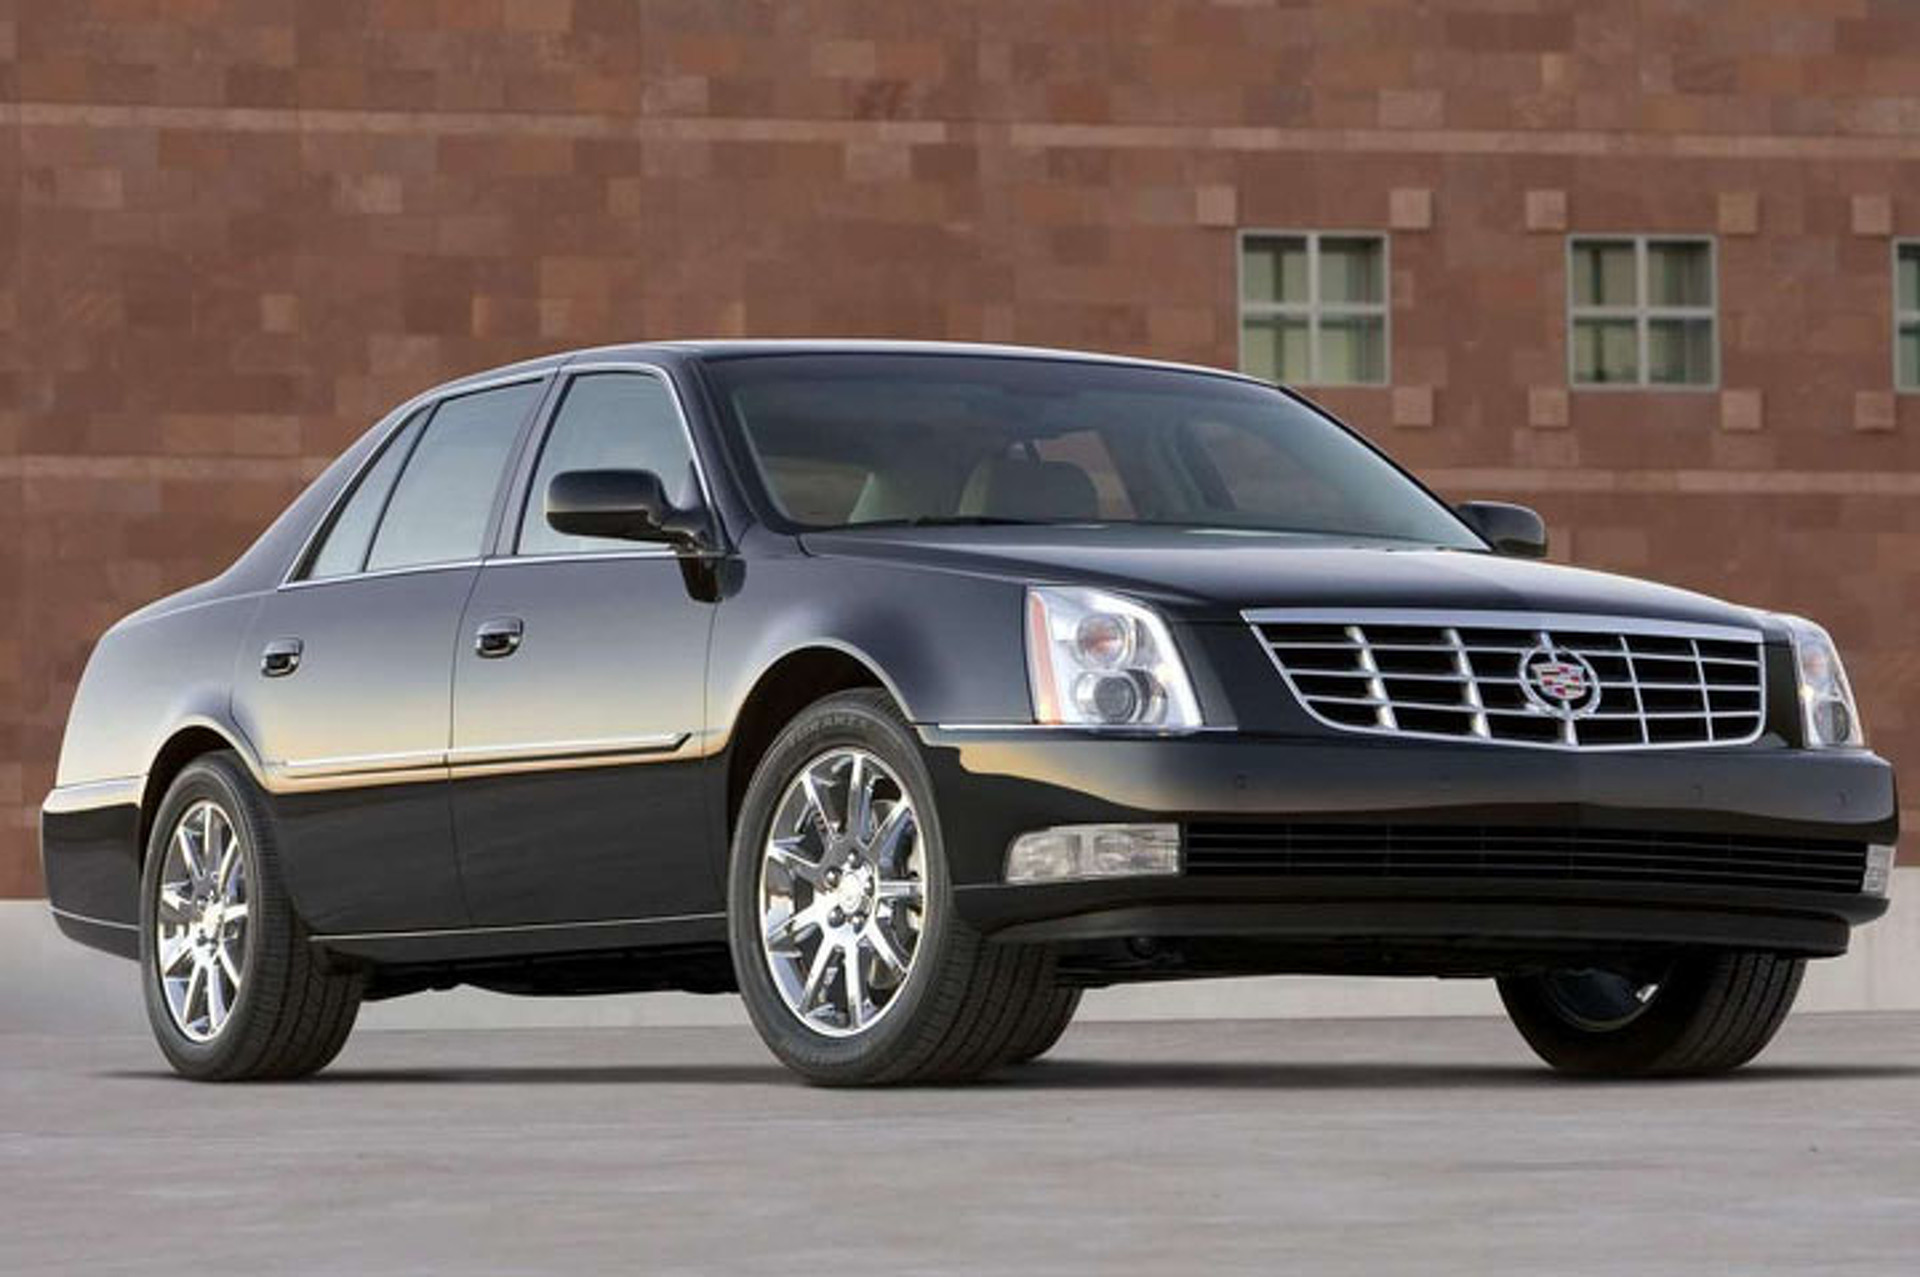 GM Recall Extends to Its Own Recalls